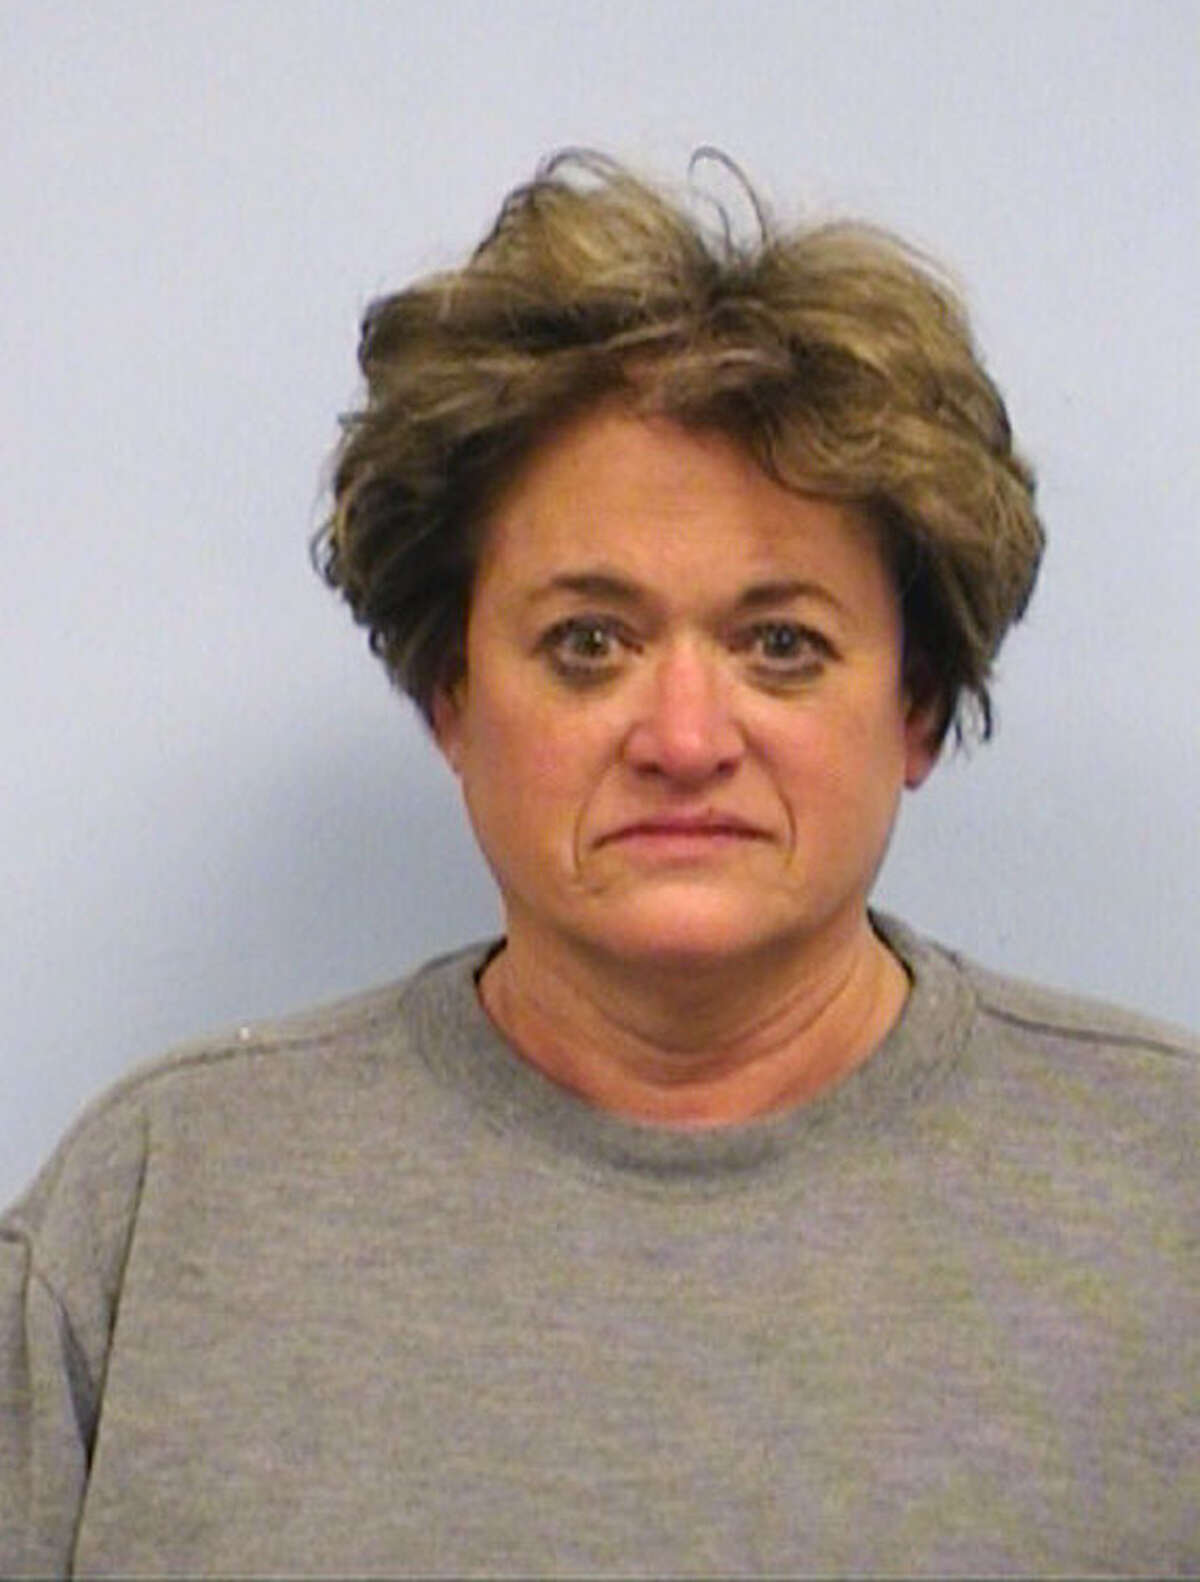 Who is Rosemary Lehmberg? Lehmberg is the Travis County District Attorney. In 2013, she was arrested for drunk driving. After her arrest, a complaint was filed and Perry threatened to veto funding if she did not resign from the DA position. Lehmberg plead guilty to driving while intoxicated and served 45 days in prison, but kept her job.